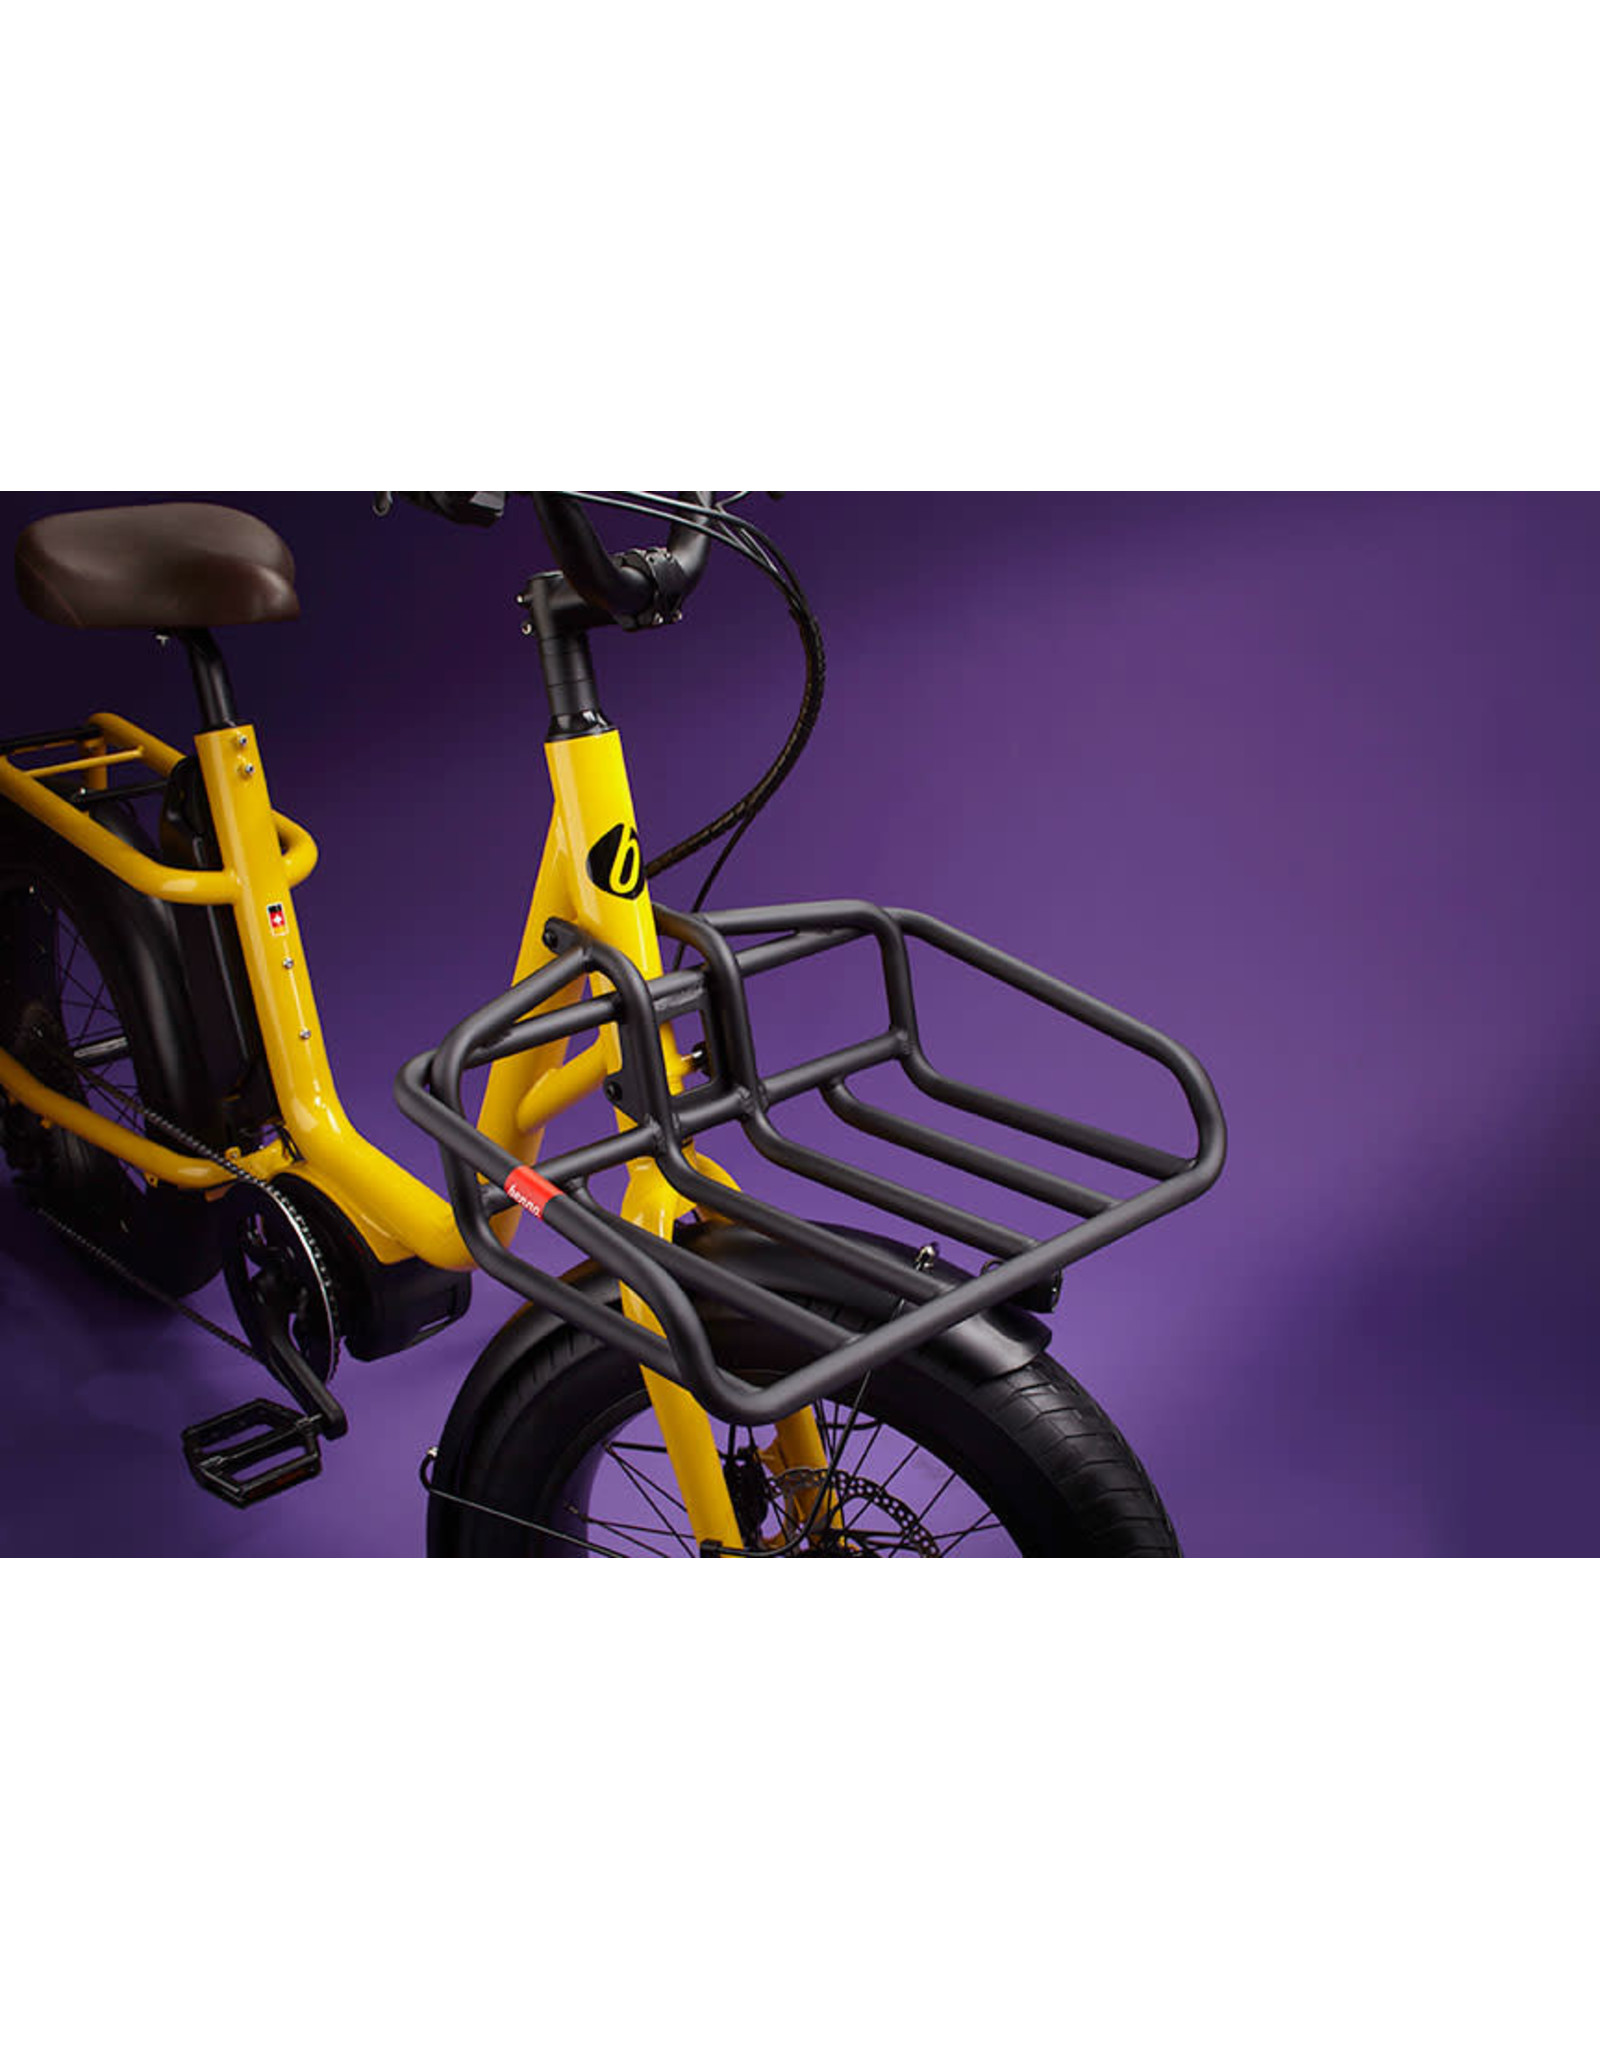 Benno Copy of Benno Remidemi Performance 65nm 400wh step through Compact electric cargo fat bike anthracite